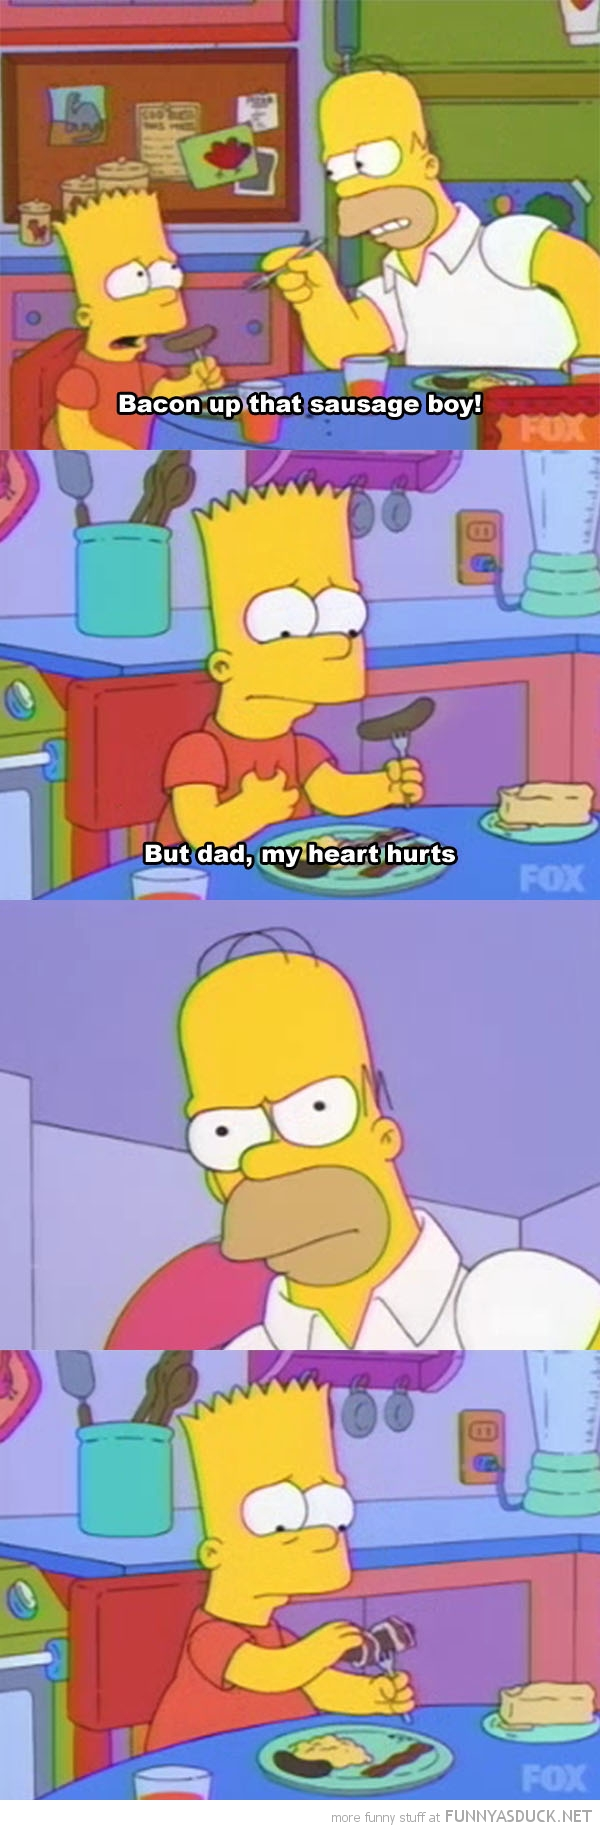 simpsons tv scene bart homer bacon sausage boy funny pics pictures pic picture image photo images photos lol